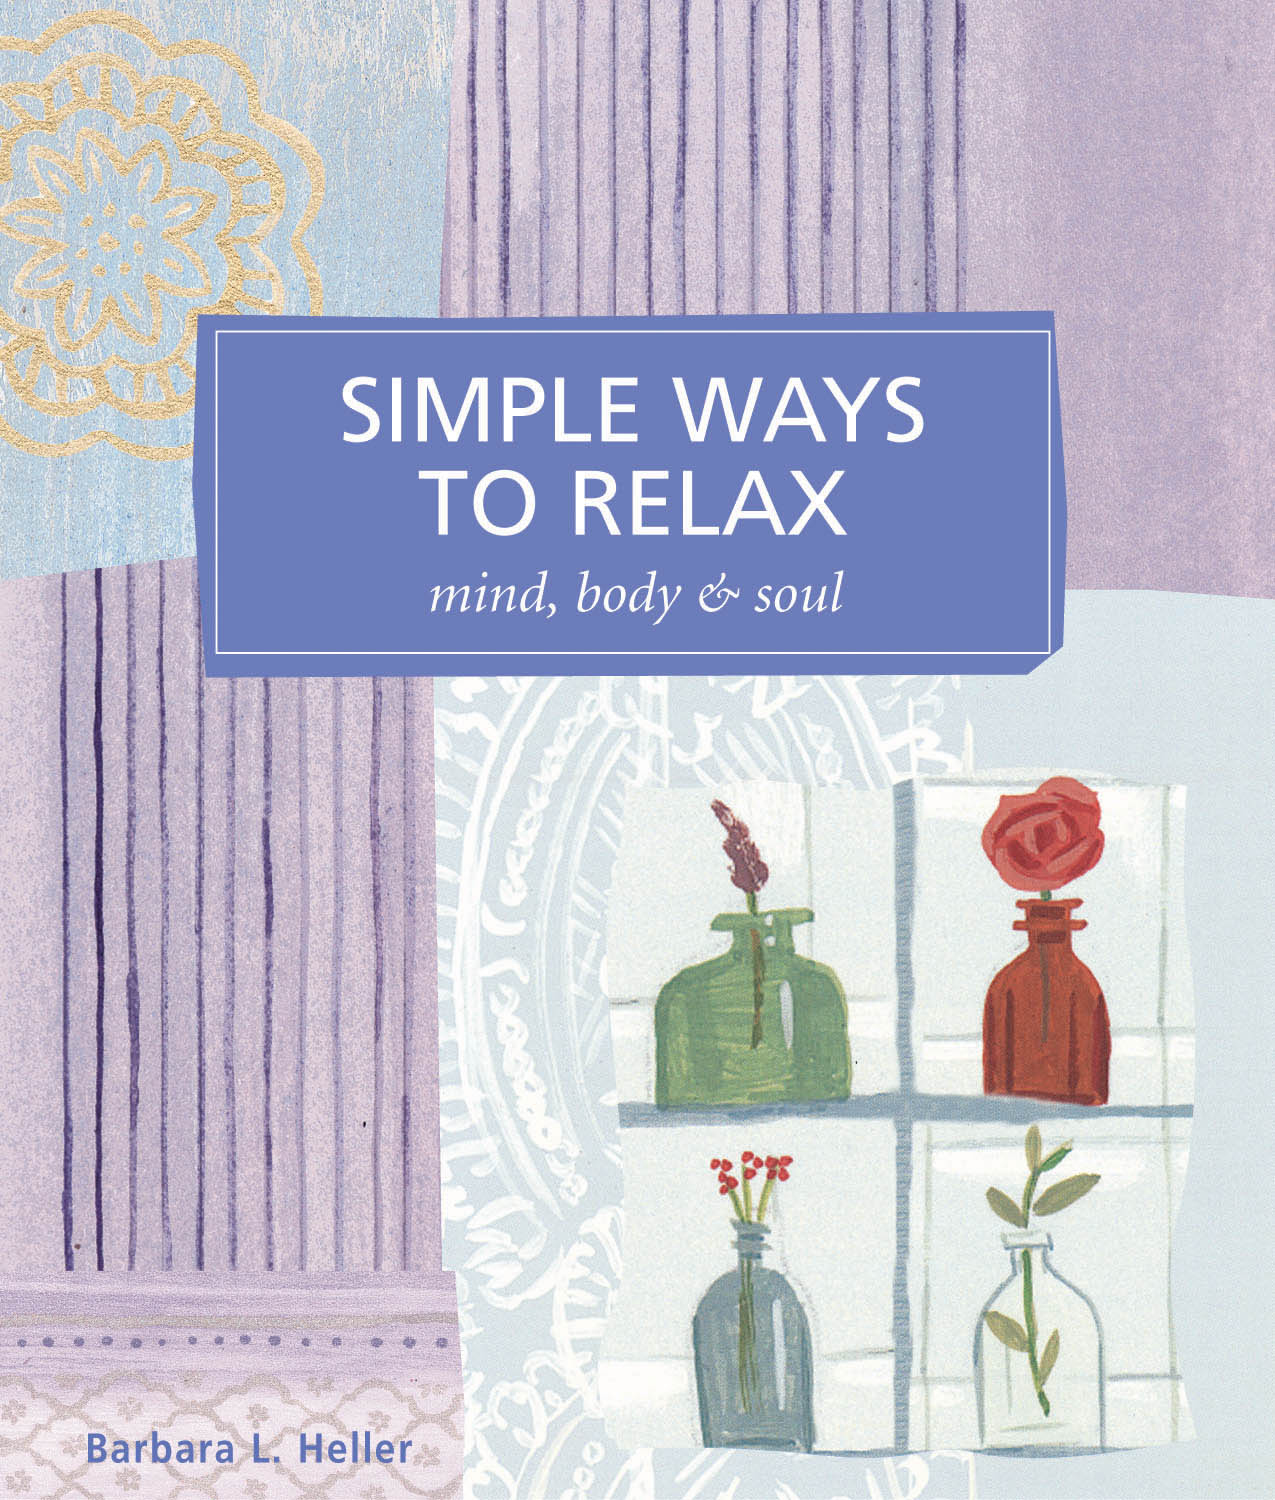 Simple Ways to Relax  - Barbara L. Heller